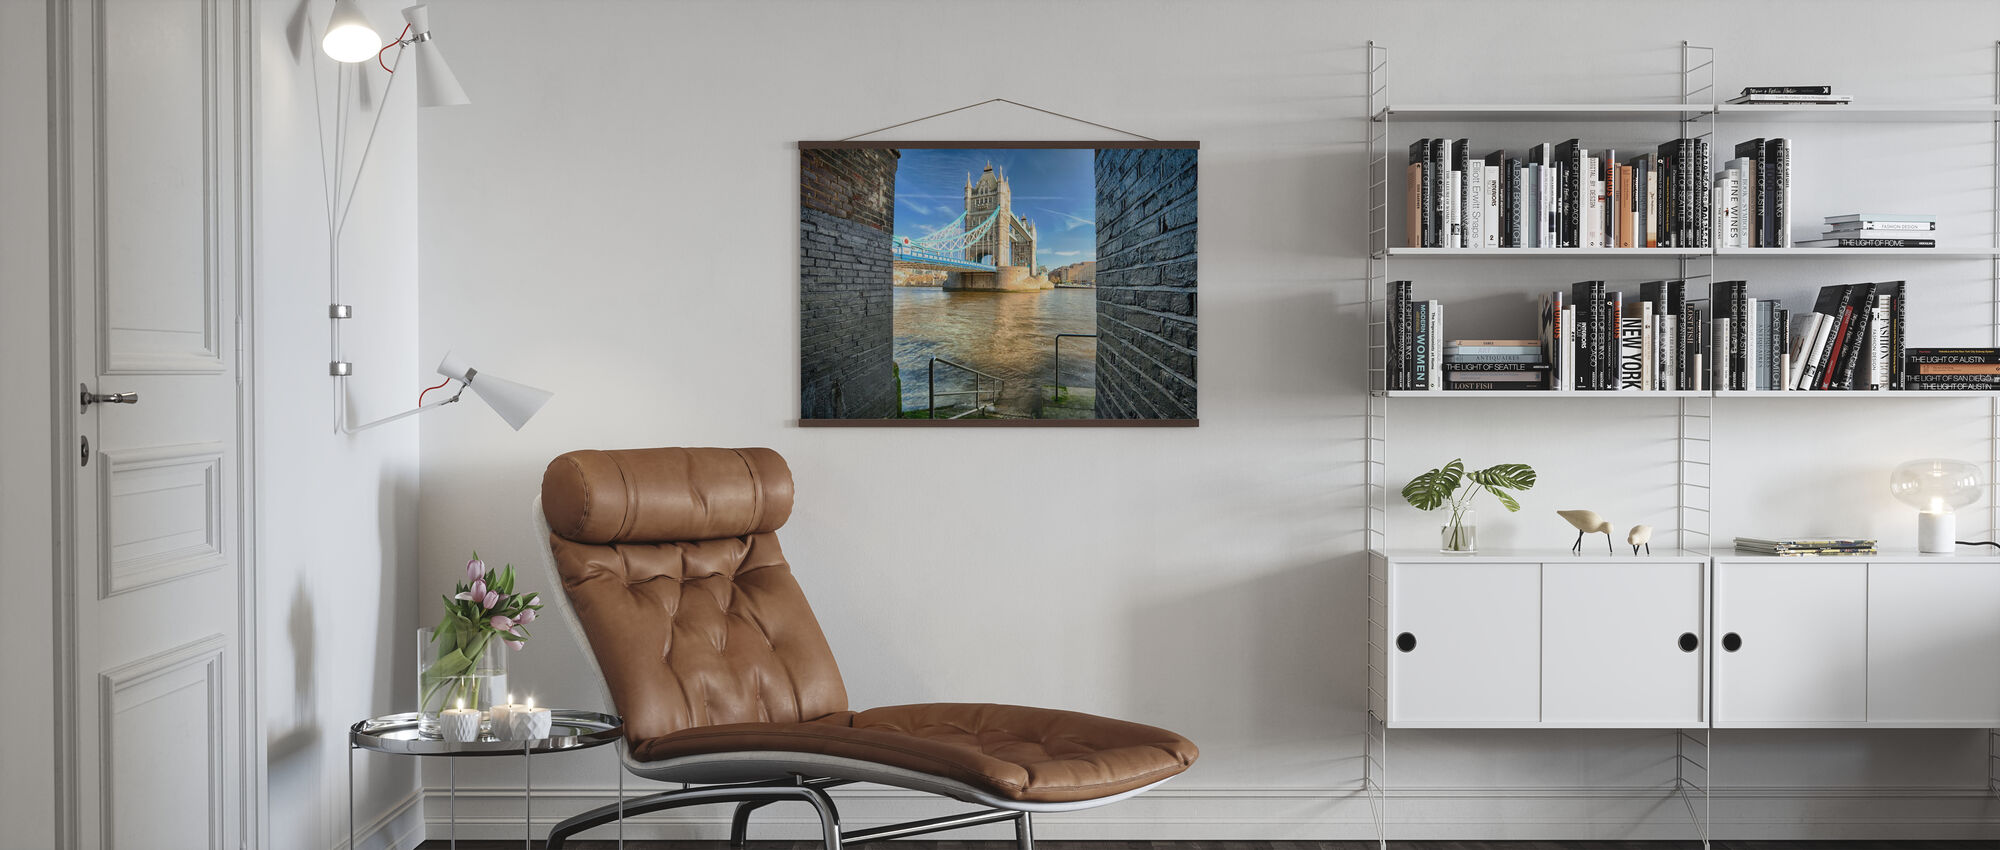 Alternative View on Tower Bridge - Poster - Living Room